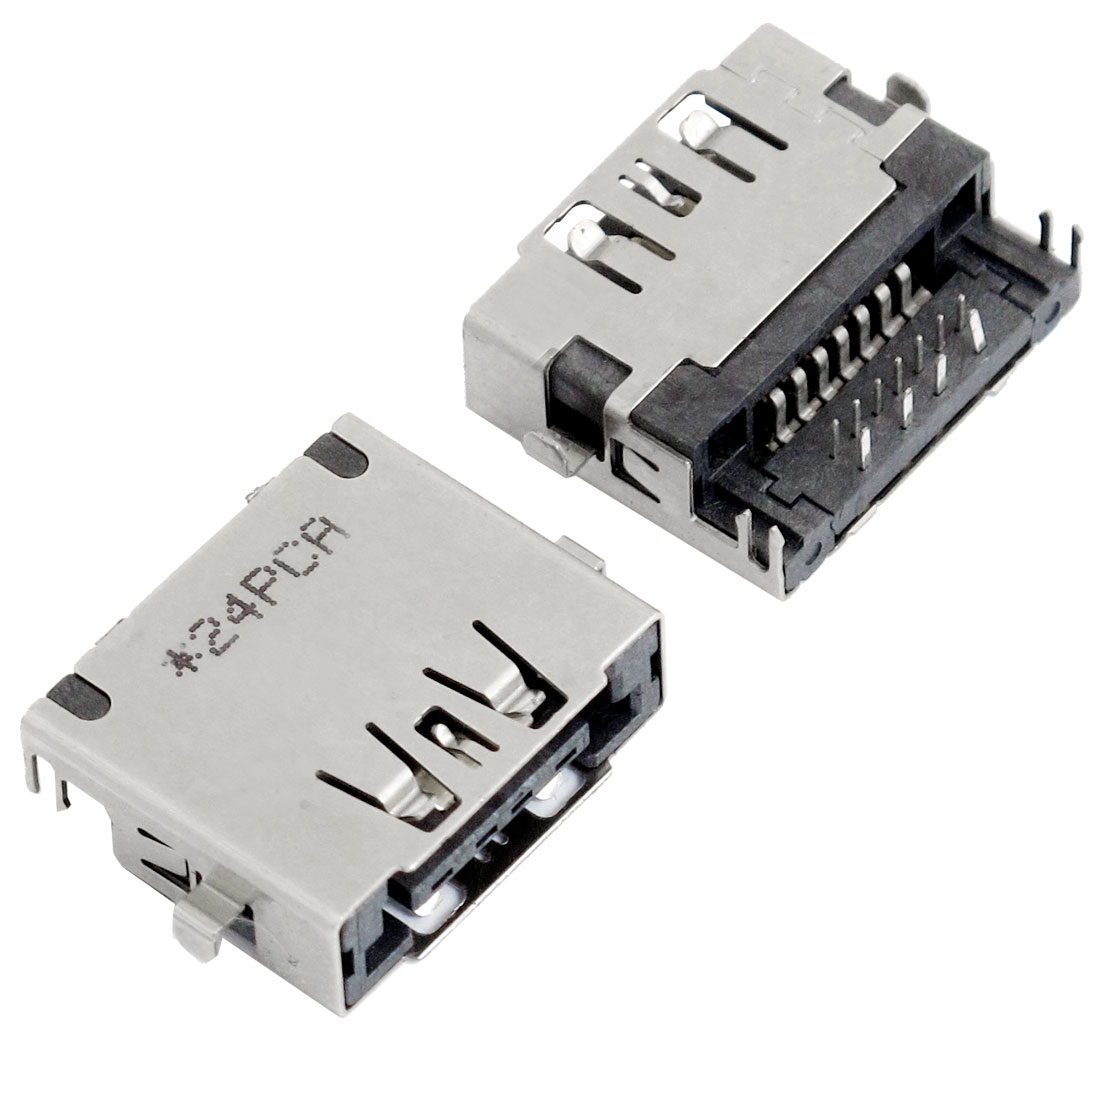 2 Pcs Right Angle Female ESATA + USB PCB Jack Connectors